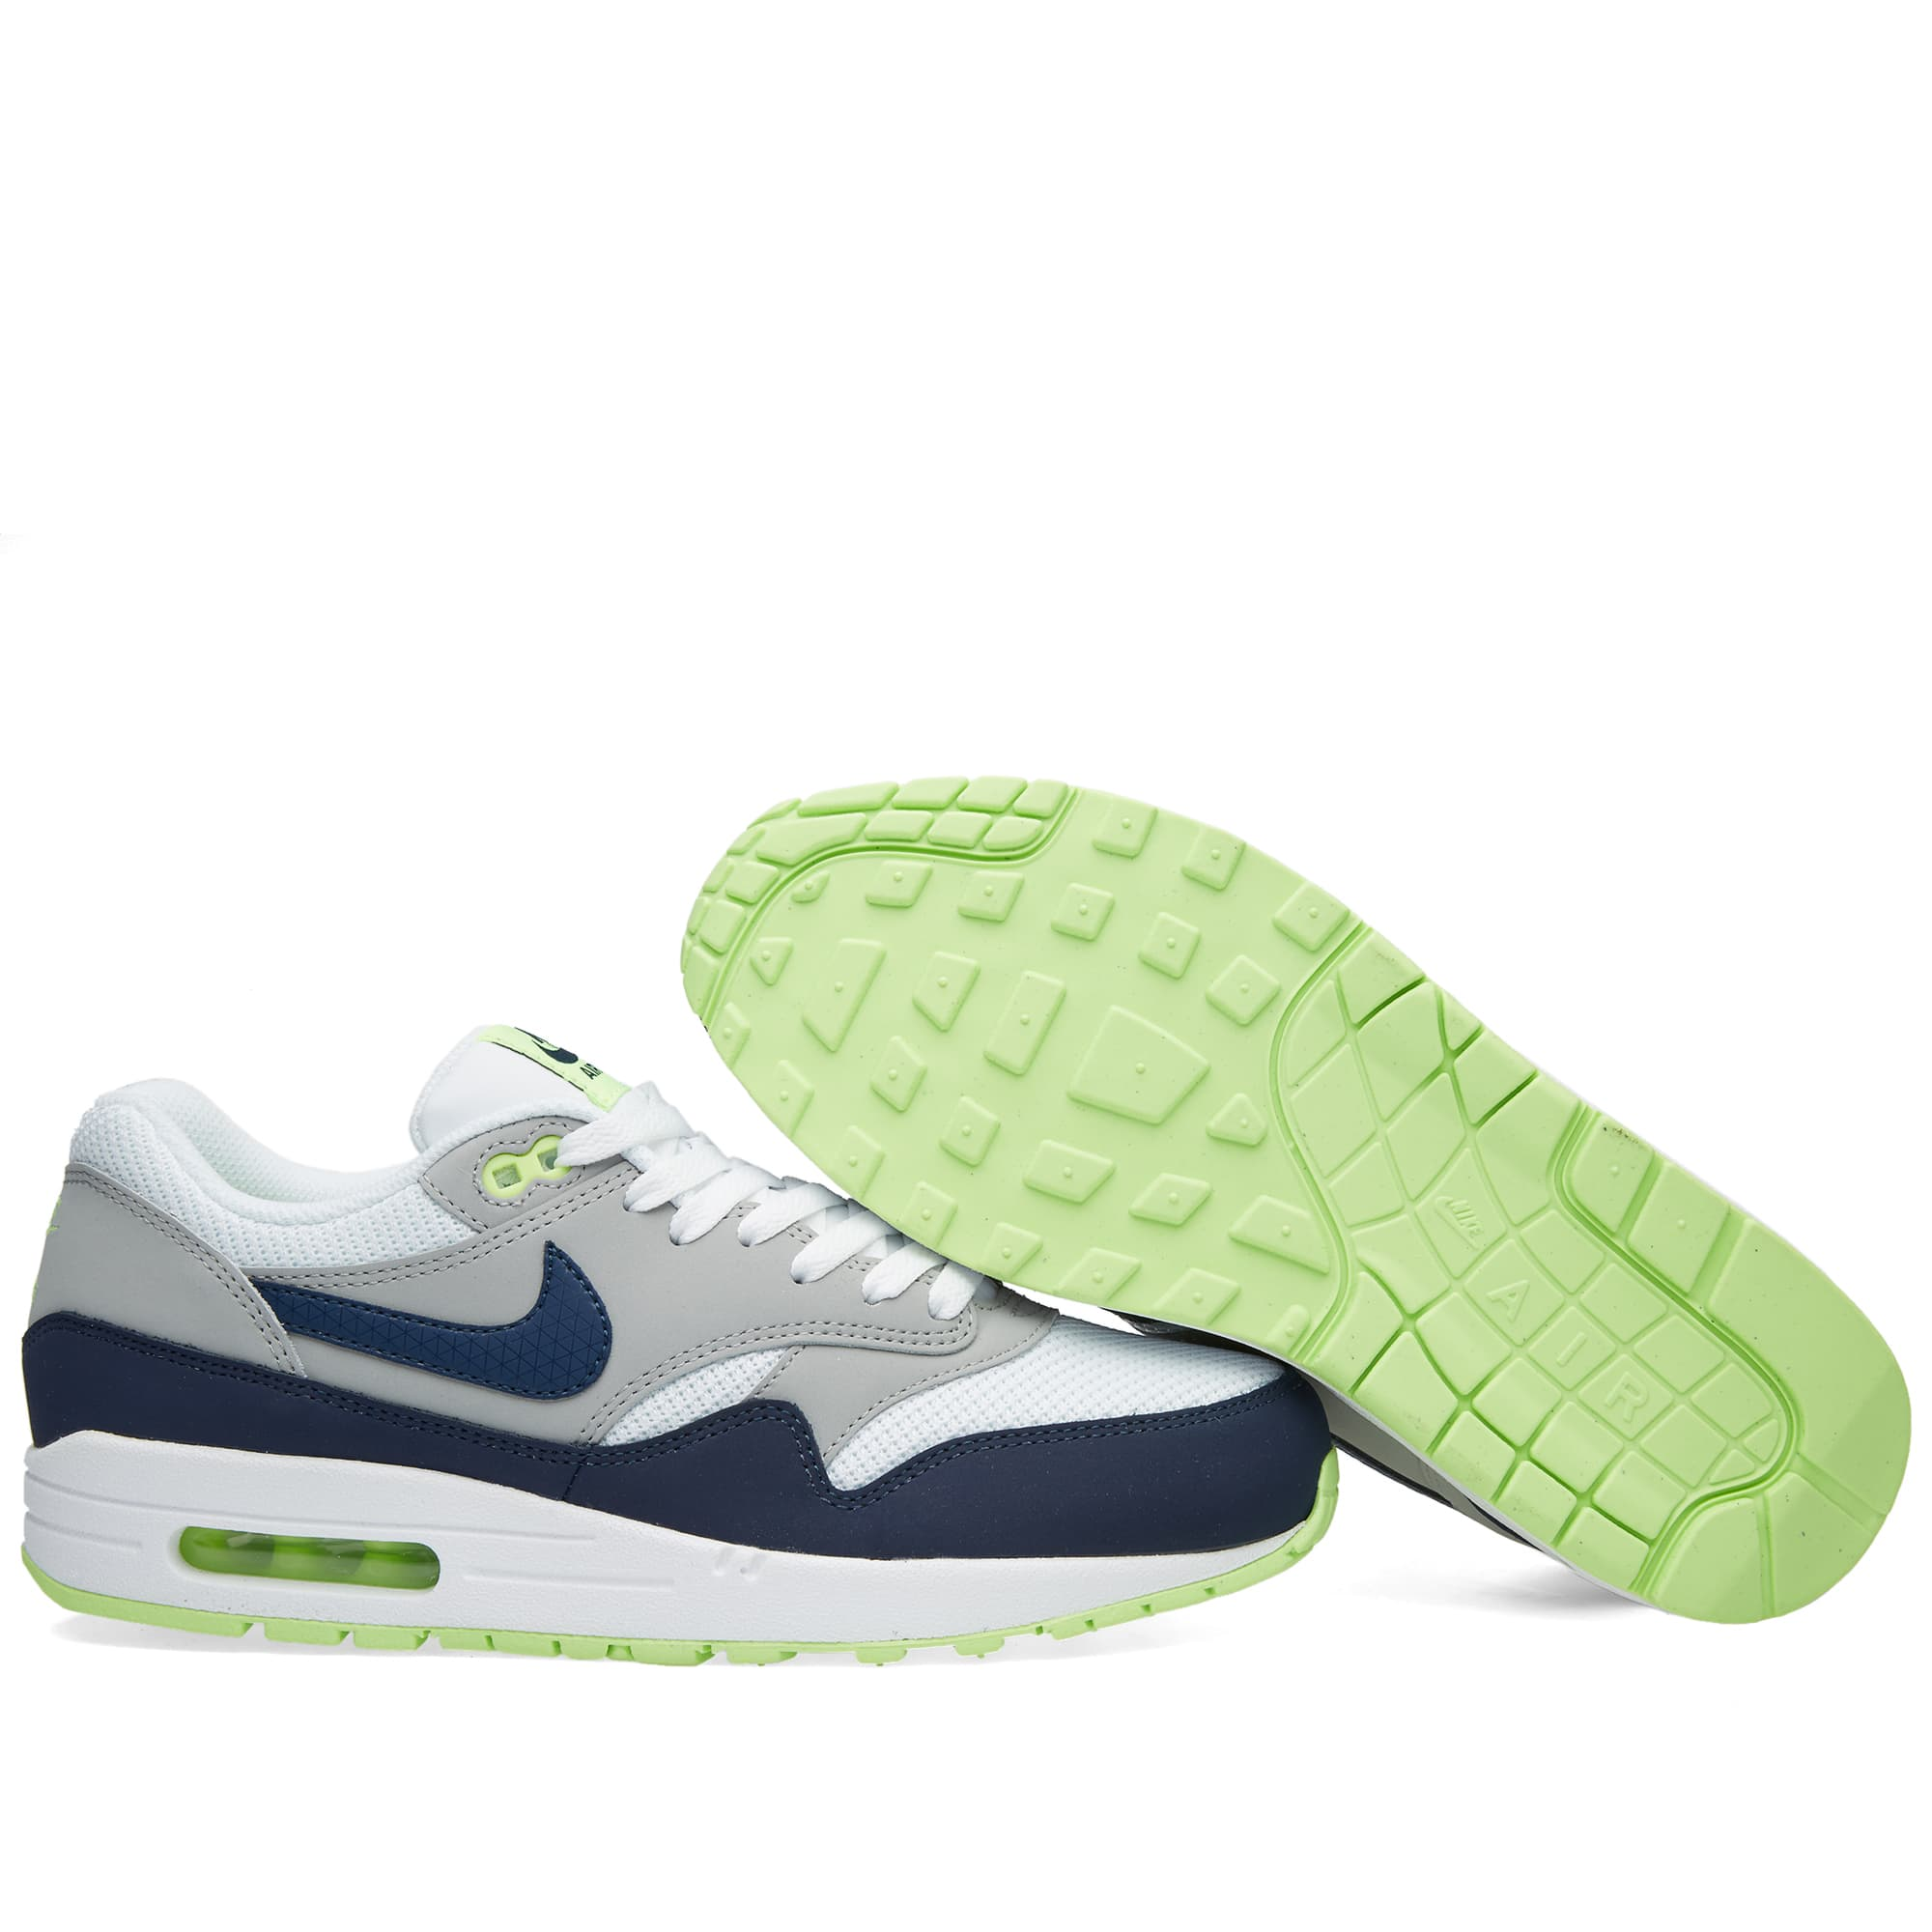 difícil Cambiarse de ropa Electropositivo  Nike Air Max 1 Essential White, Midnight Navy & Silver | END.